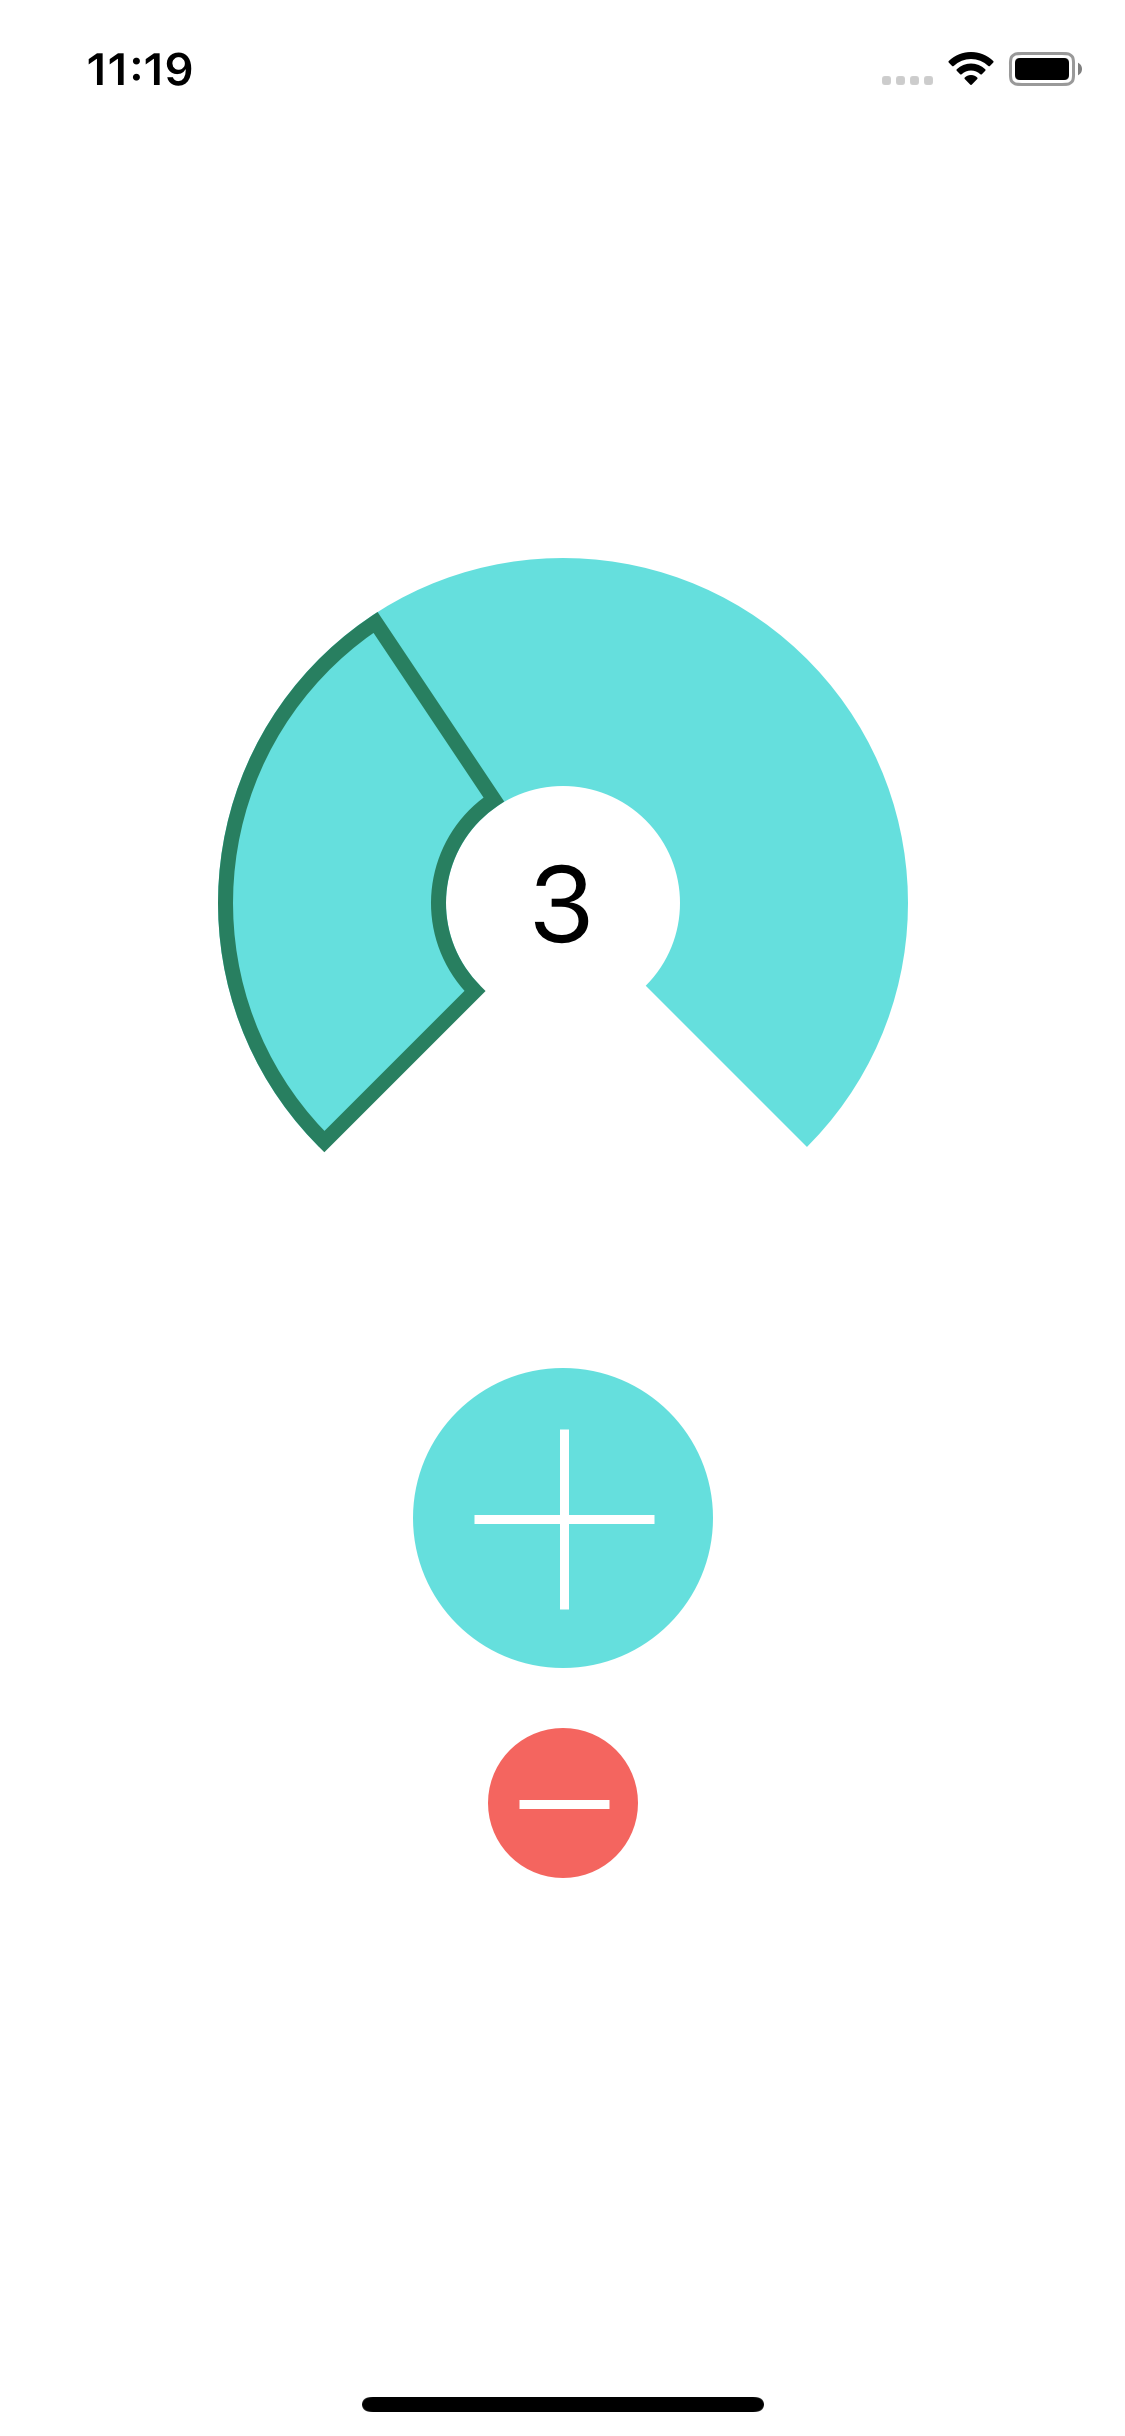 screen with two buttons and an arc with number 3 in the middle